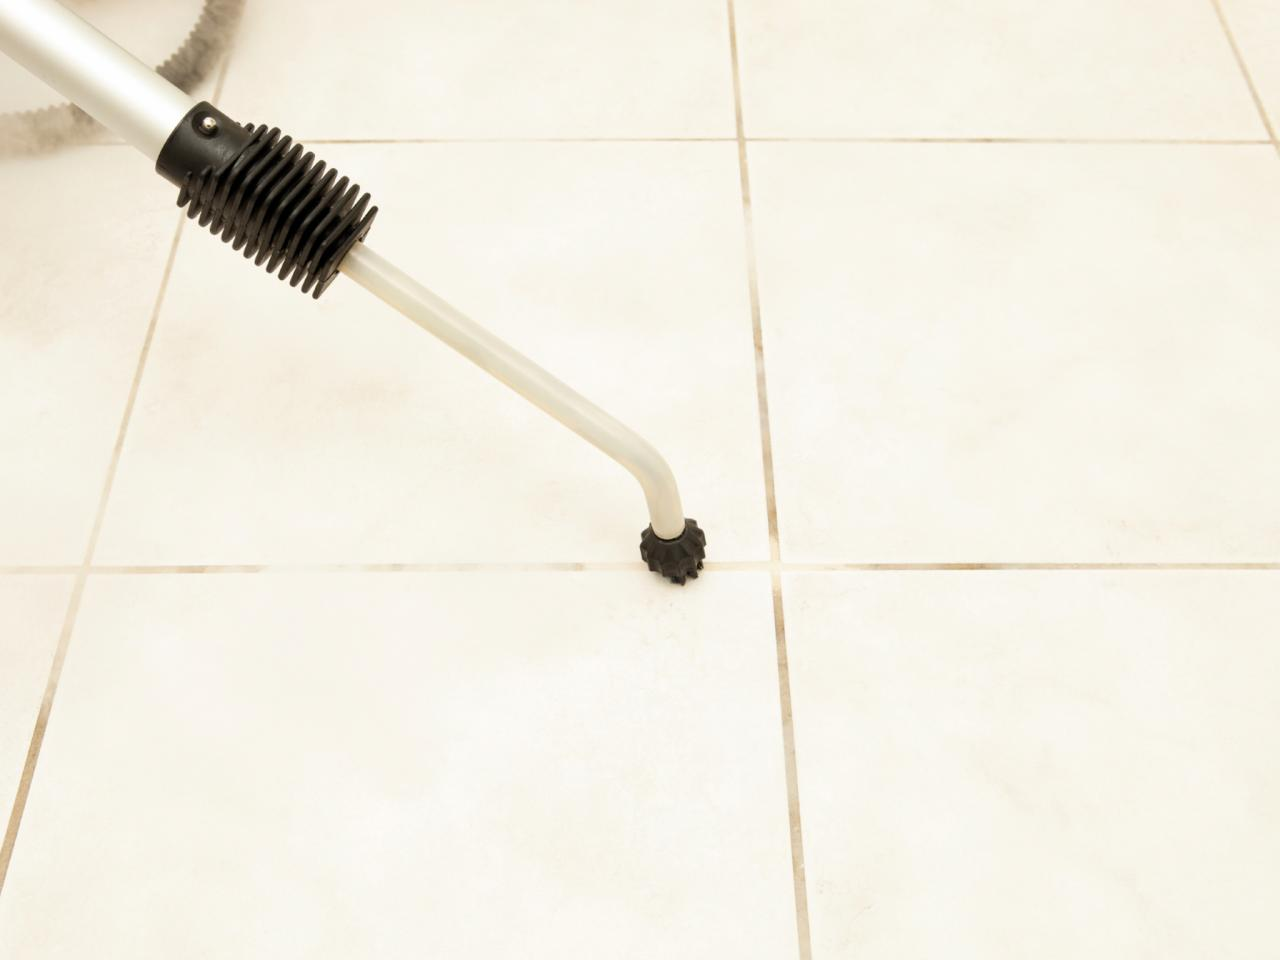 How to clean grout on bathroom floor tiles - How To Clean Grout